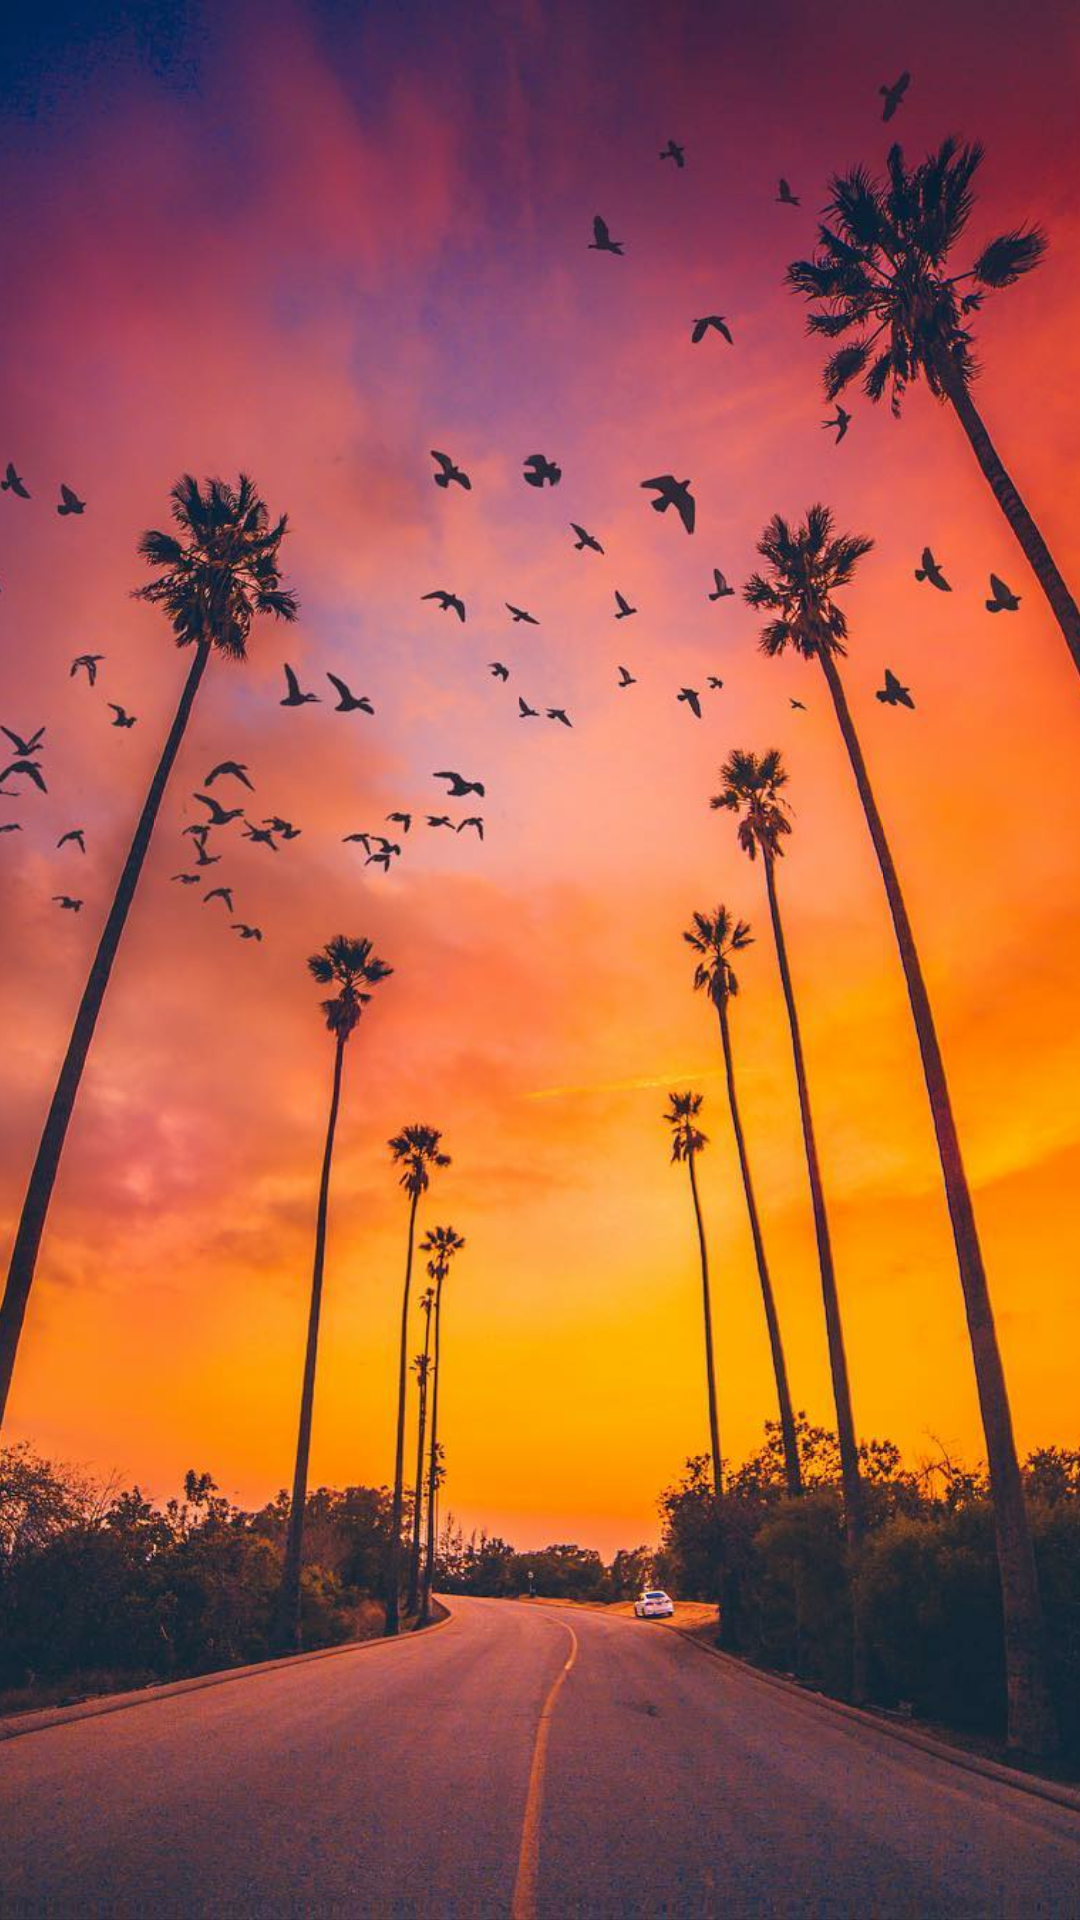 Palm Trees Sunset Nature Iphone Wallpaper Nature Backgrounds Iphone Tree Wallpaper Iphone Nature Iphone Wallpaper